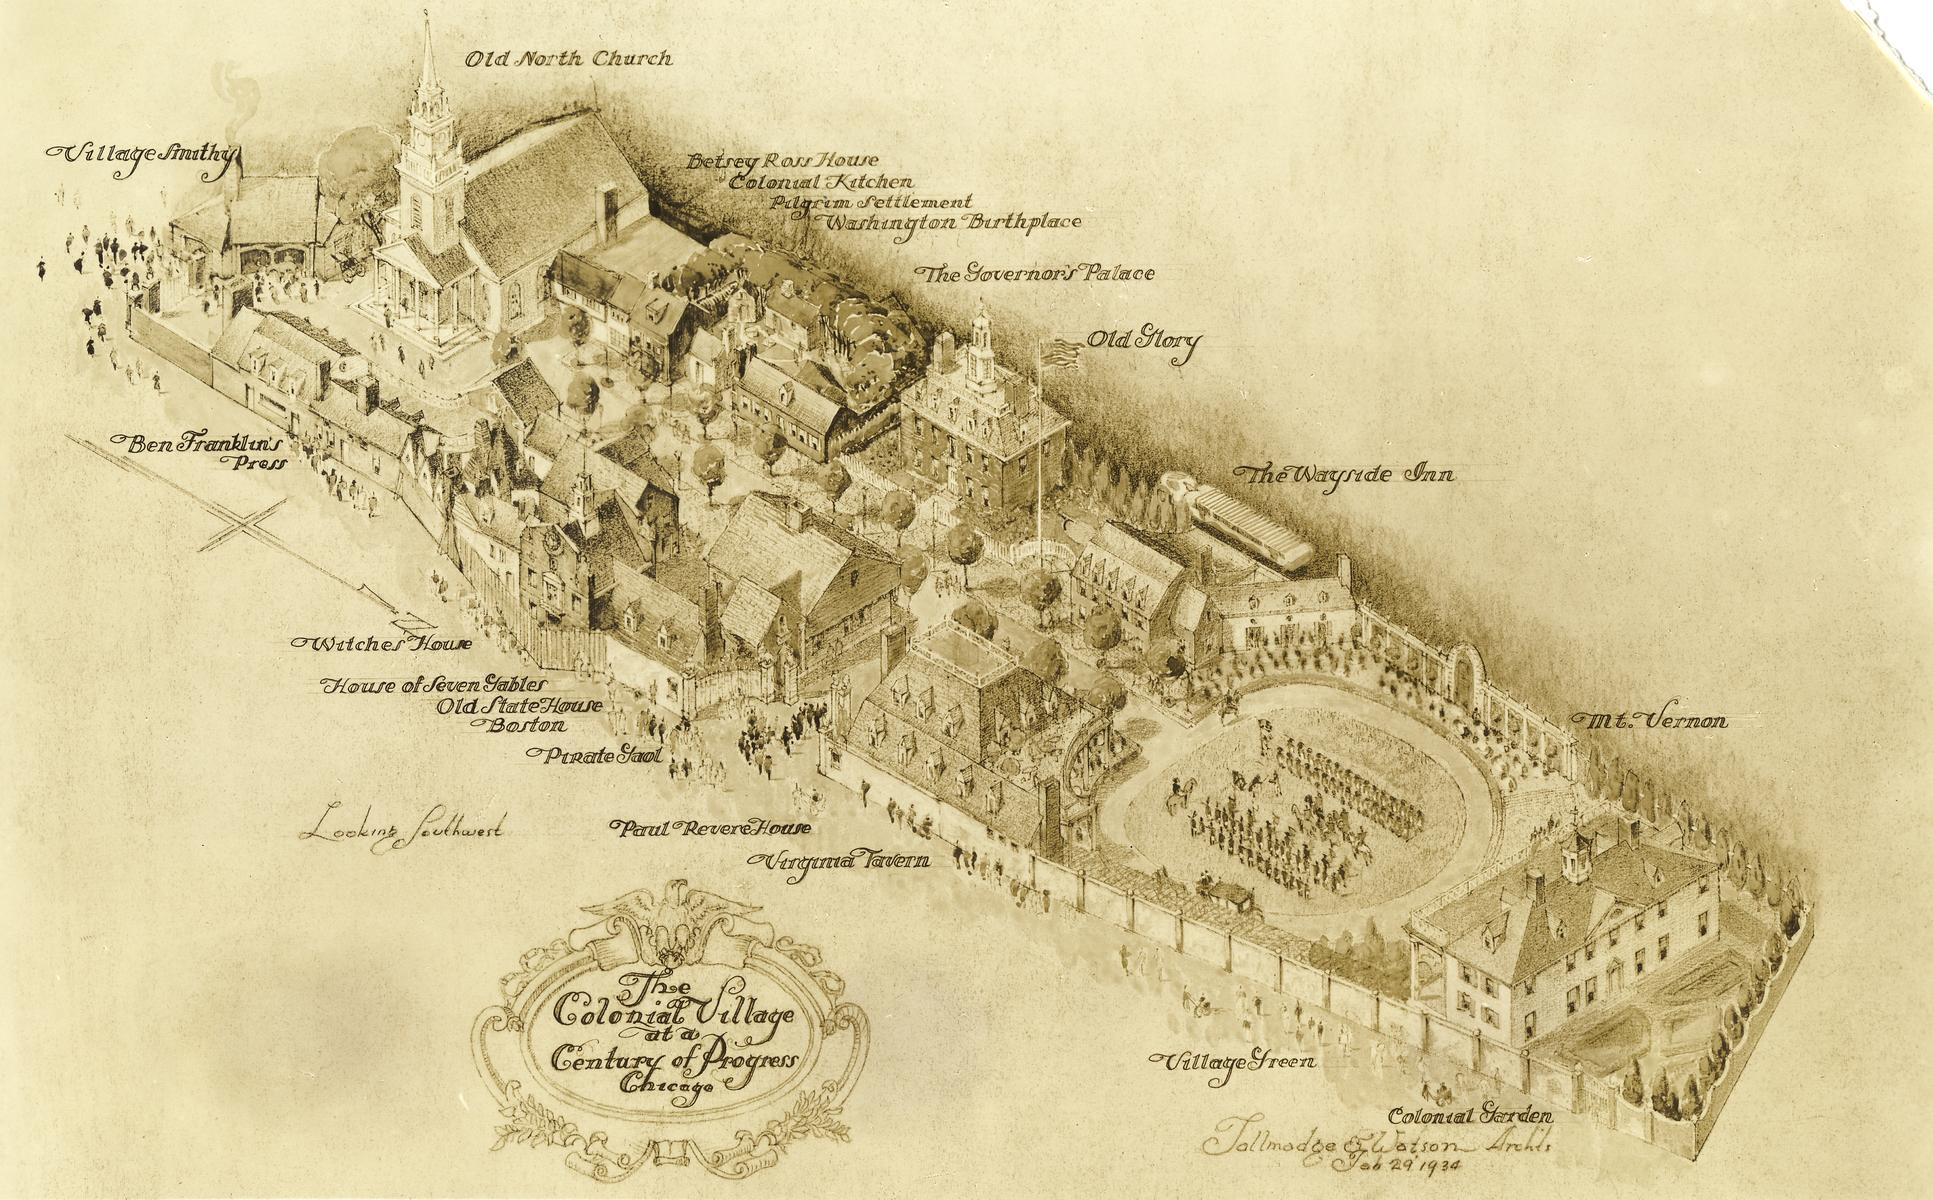 Ecc Artists Conception Of New American Colonial Village For Chi